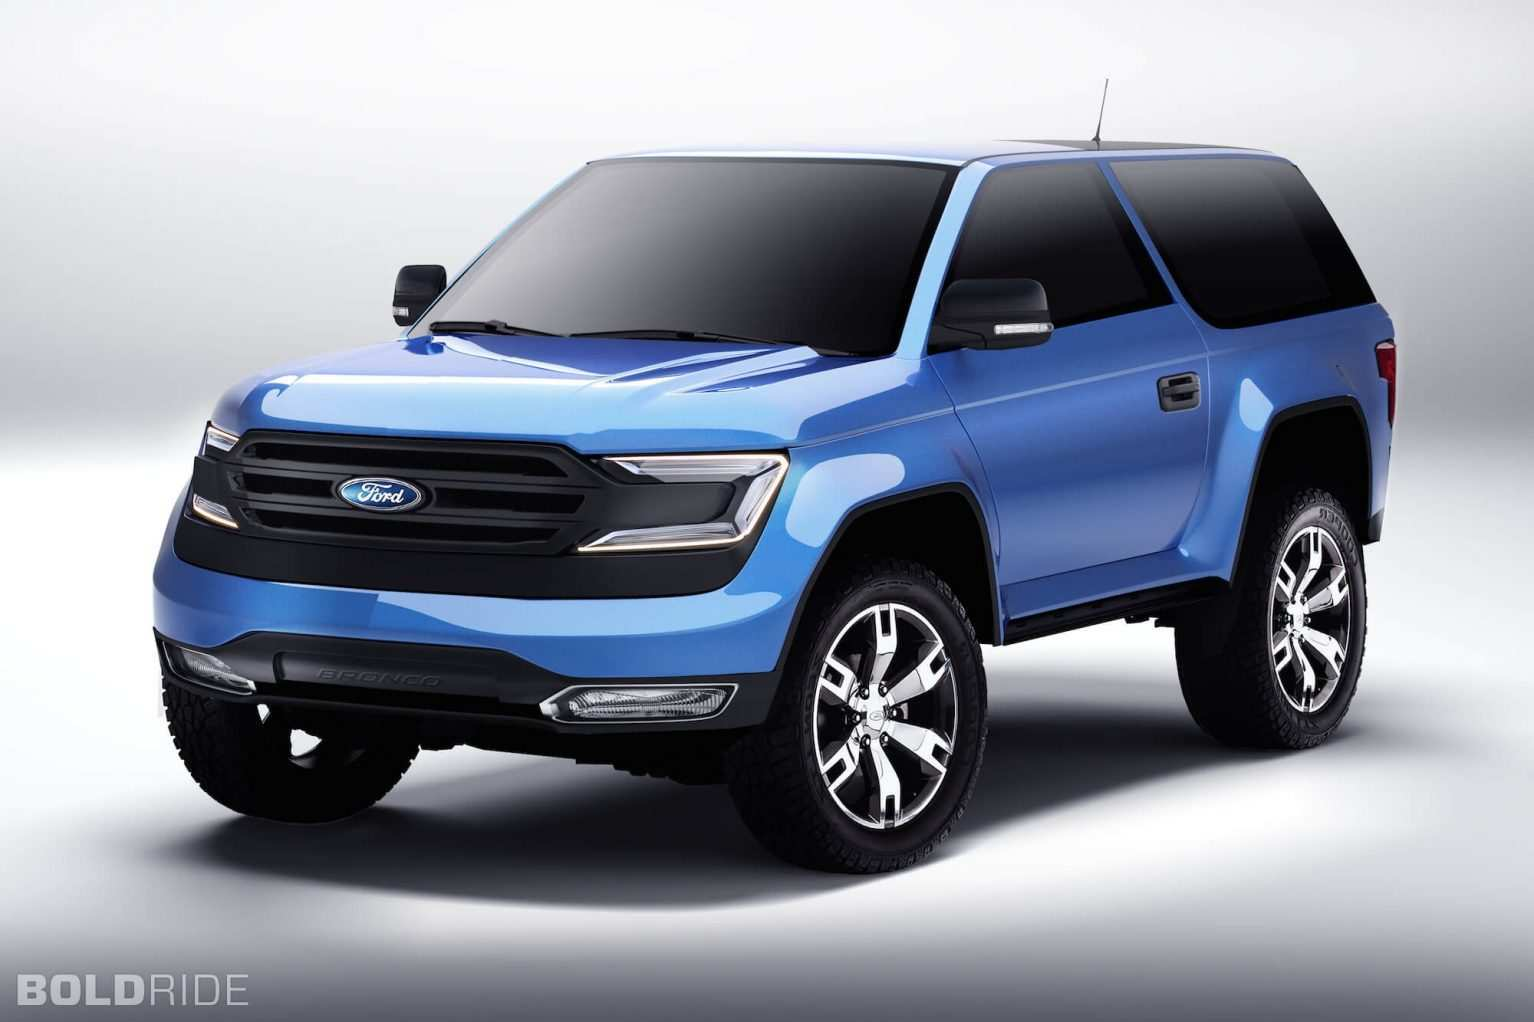 62 A 2020 Ford Bronco Wallpaper New Model And Performance